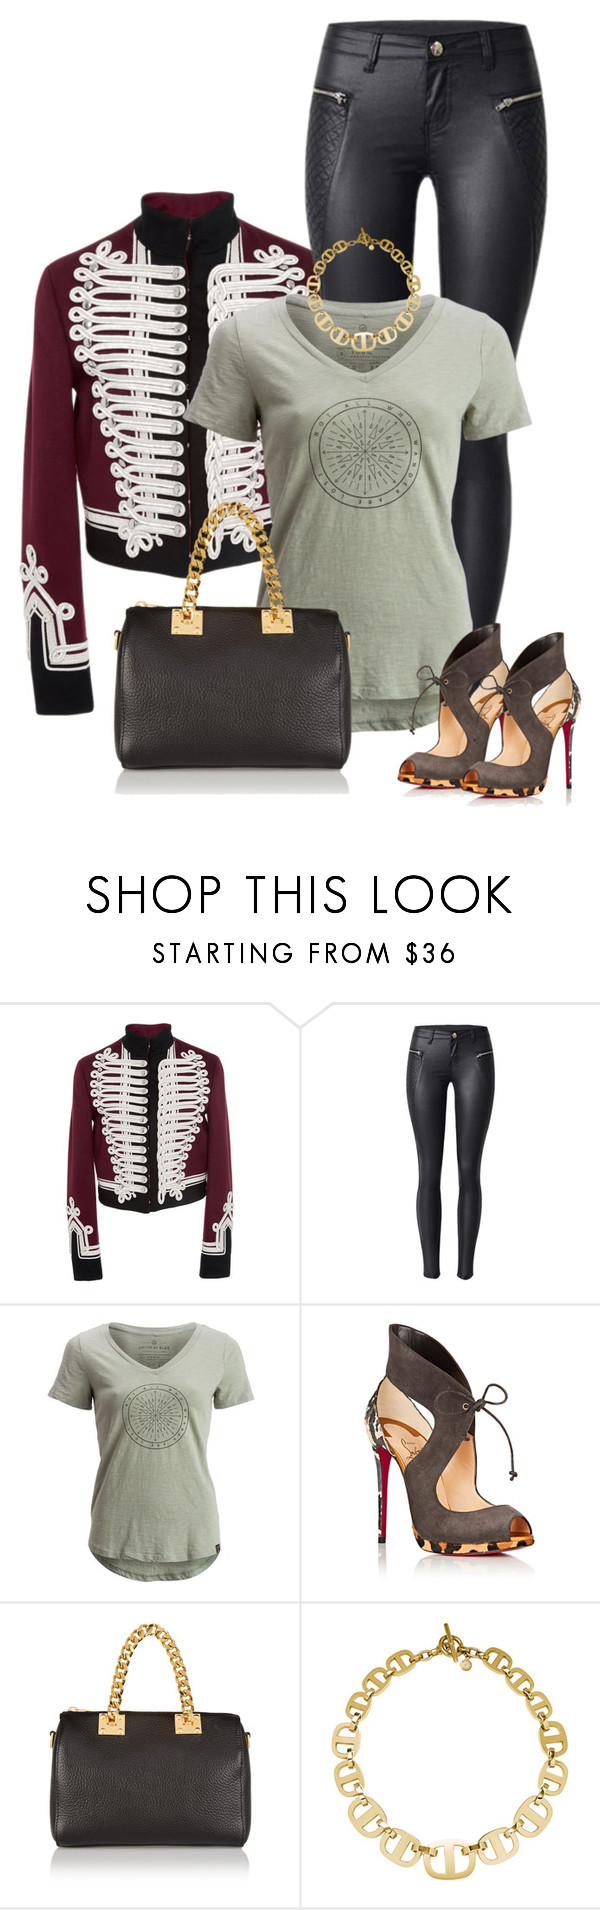 """Military chic"" by ksims-1 ❤ liked on Polyvore featuring Burberry, United by Blue, Christian Louboutin, Sophie Hulme and Michael Kors"